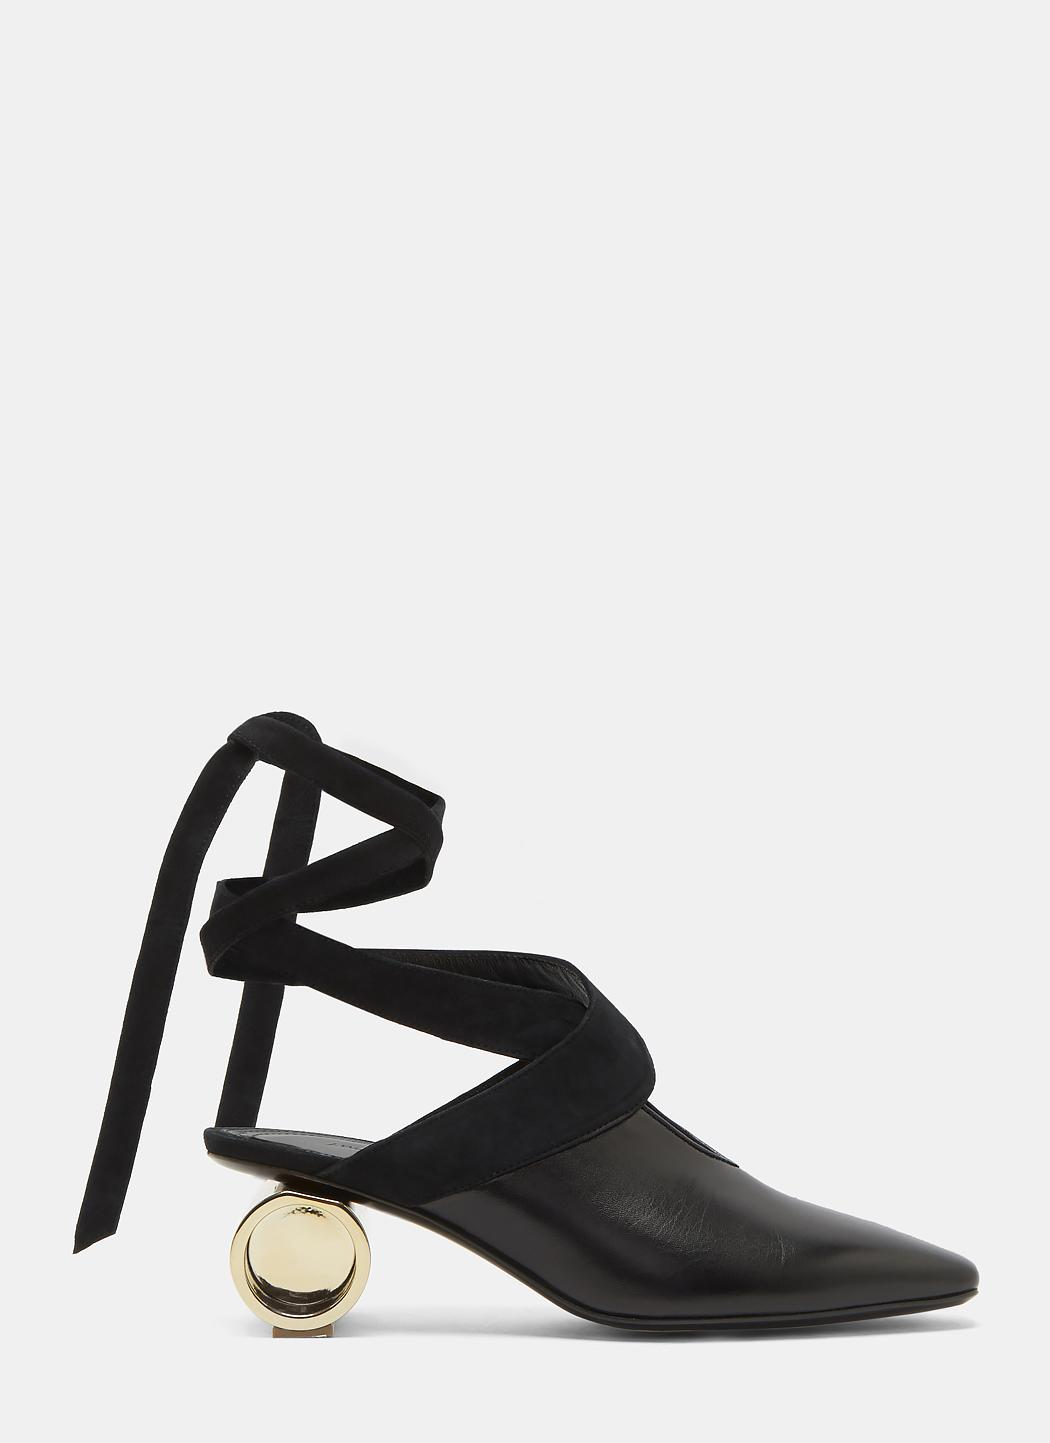 Cylinder Heeled Leather Ballerina Shoes J.W.Anderson Latest Online P2itMlUB